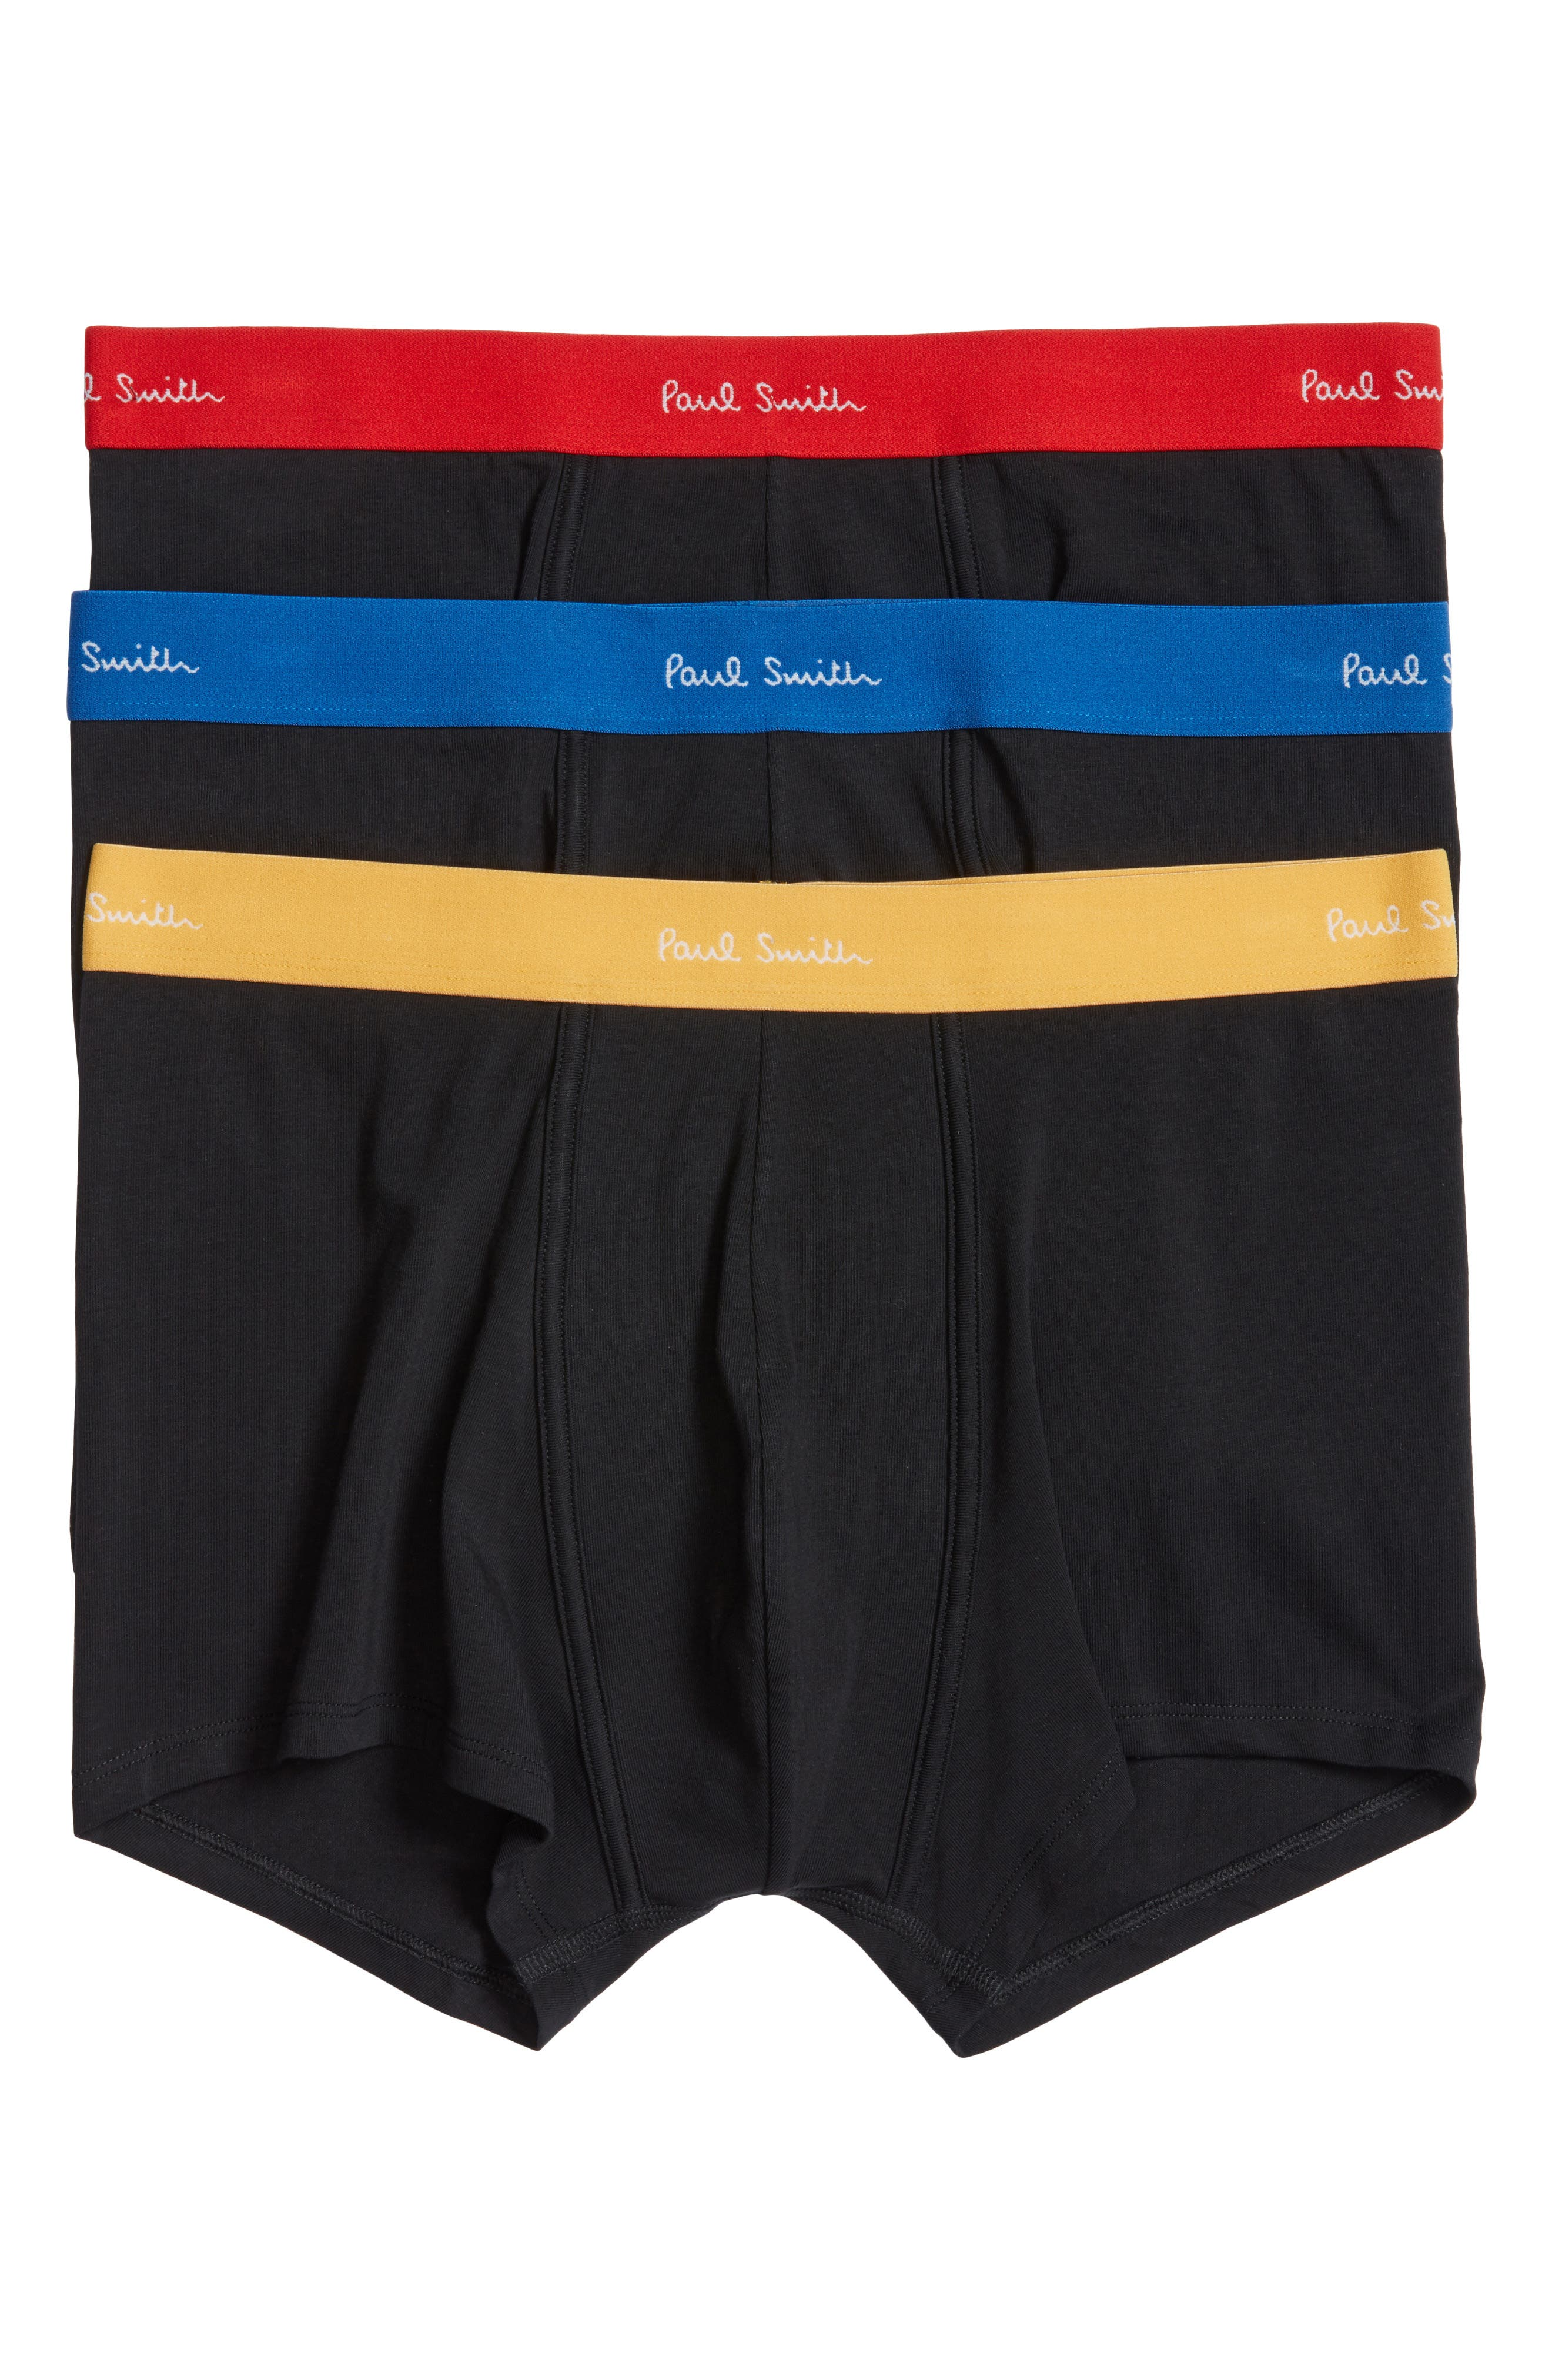 3-Pack Assorted Square Cut Trunks,                             Main thumbnail 1, color,                             018